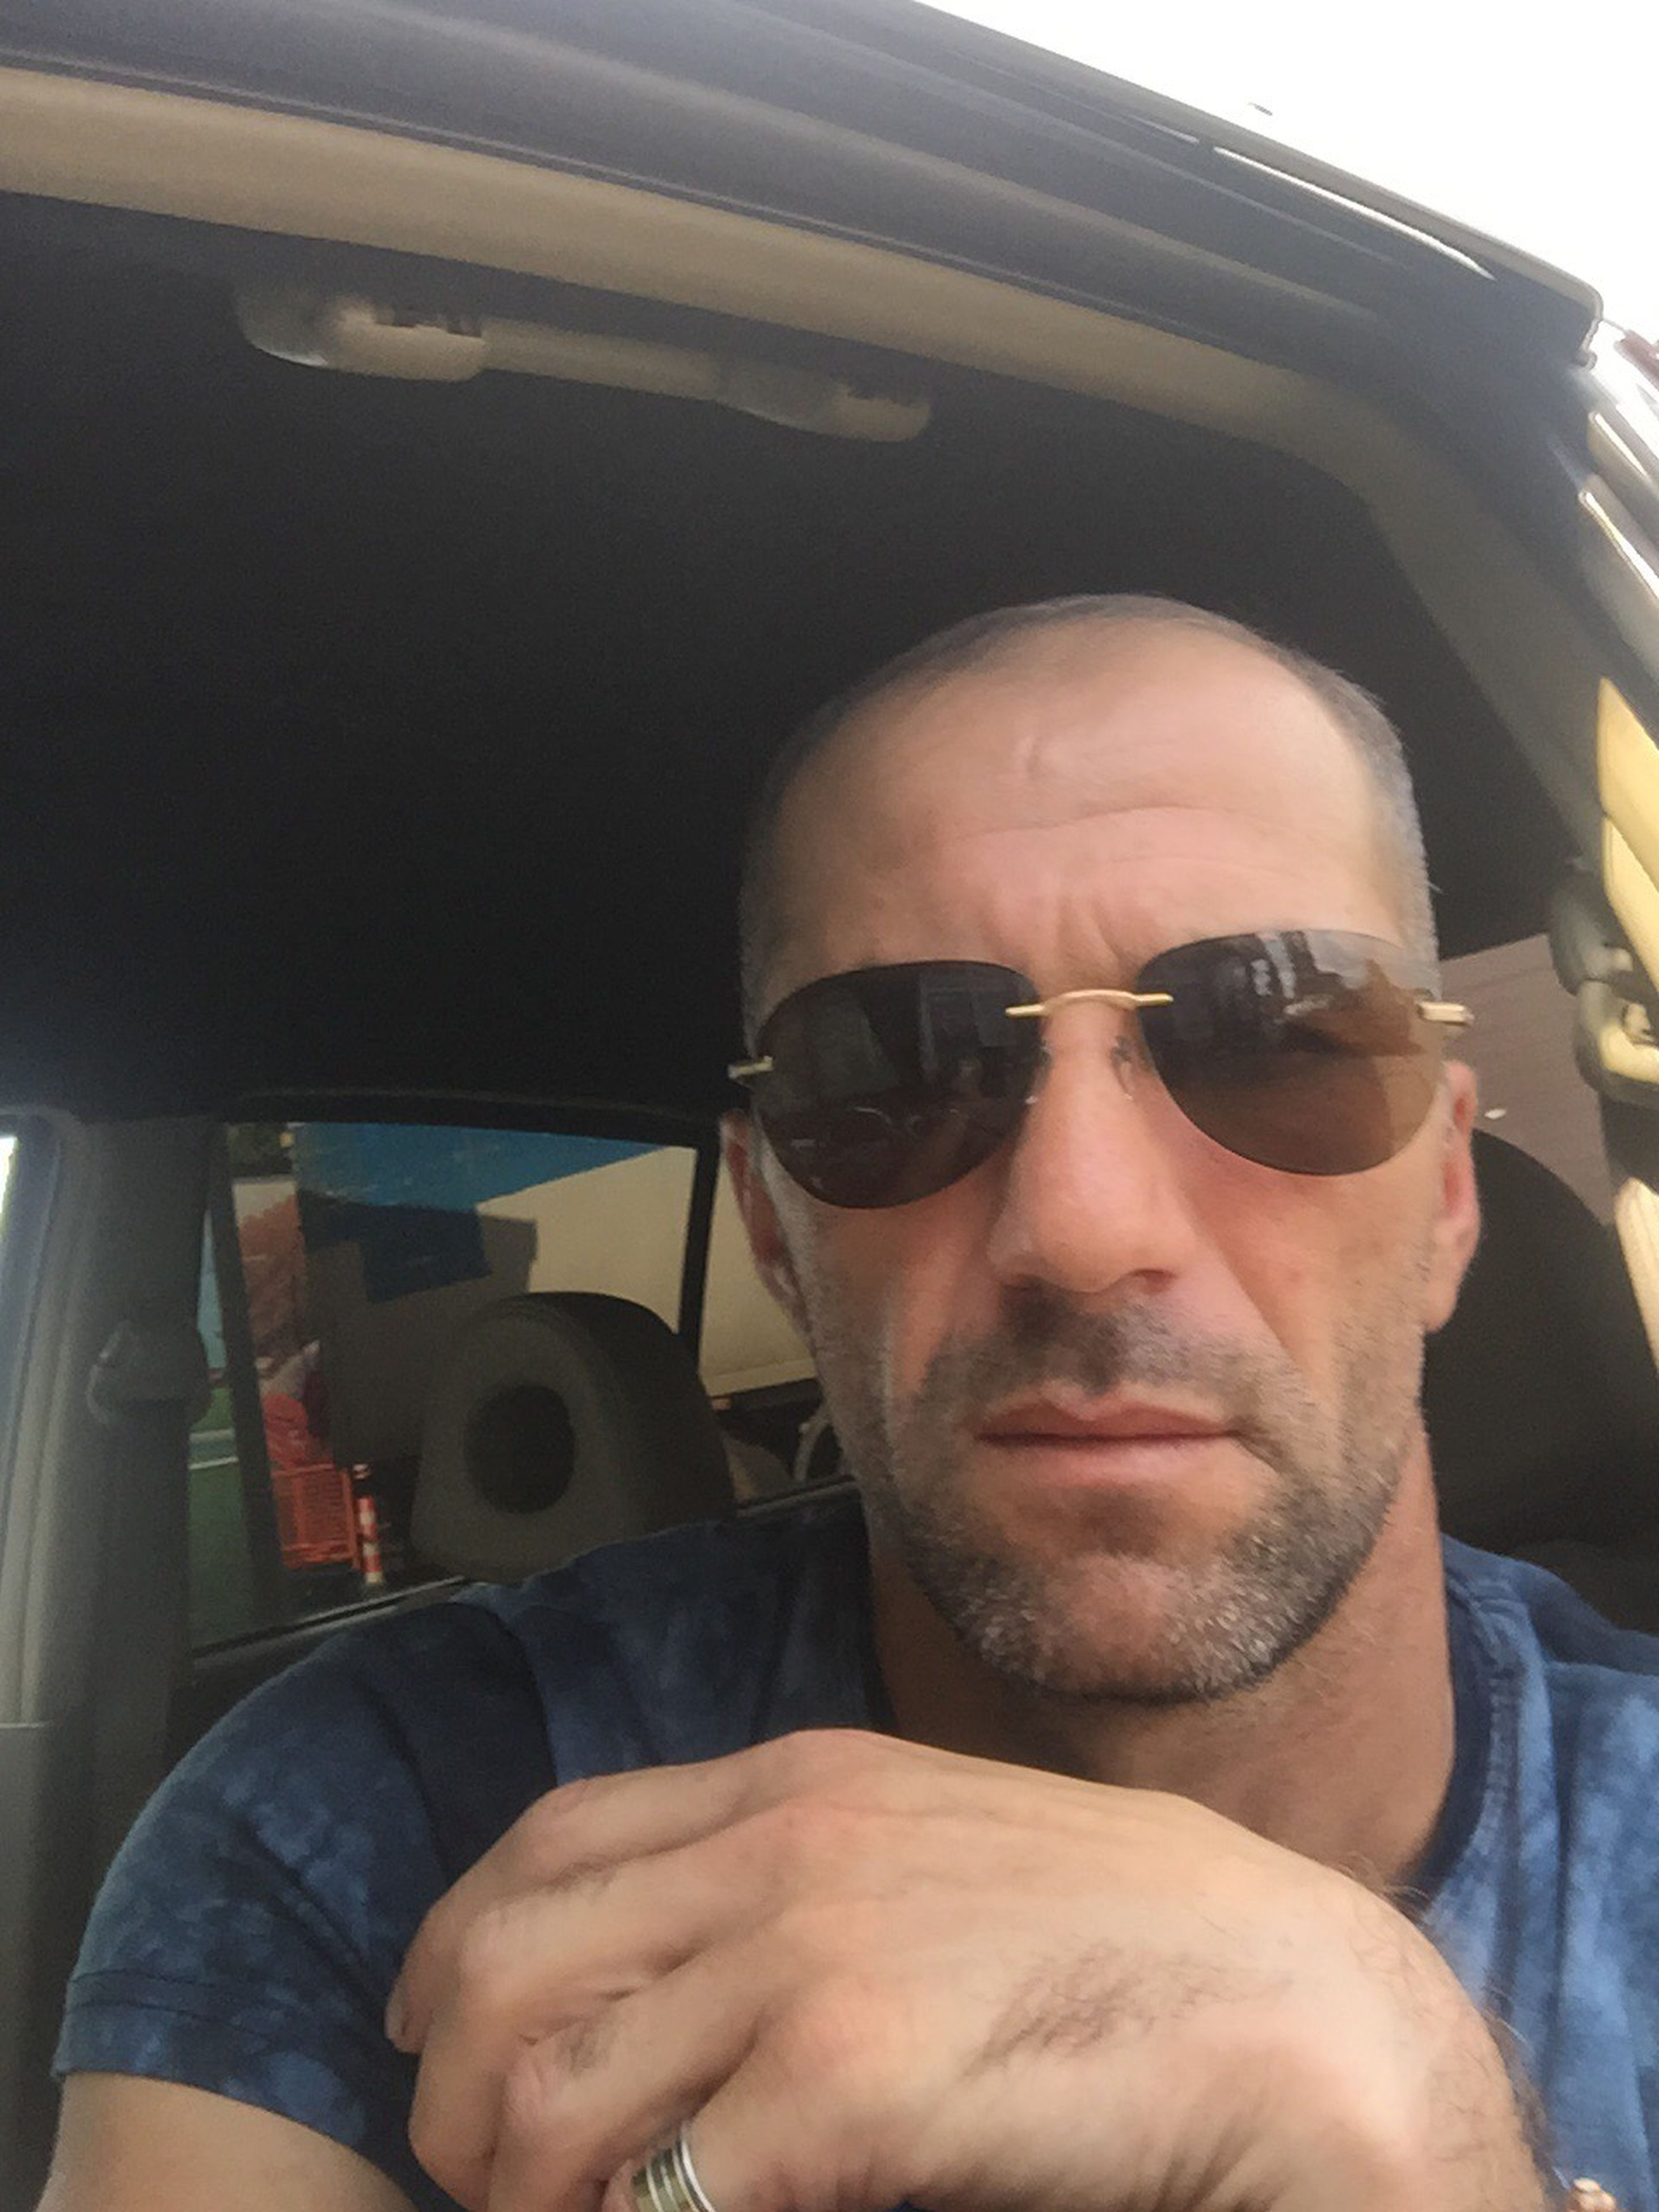 transportation, headshot, sunglasses, mode of transport, lifestyles, young men, travel, leisure activity, close-up, car interior, front view, looking at camera, casual clothing, young adult, relaxation, person, focus on foreground